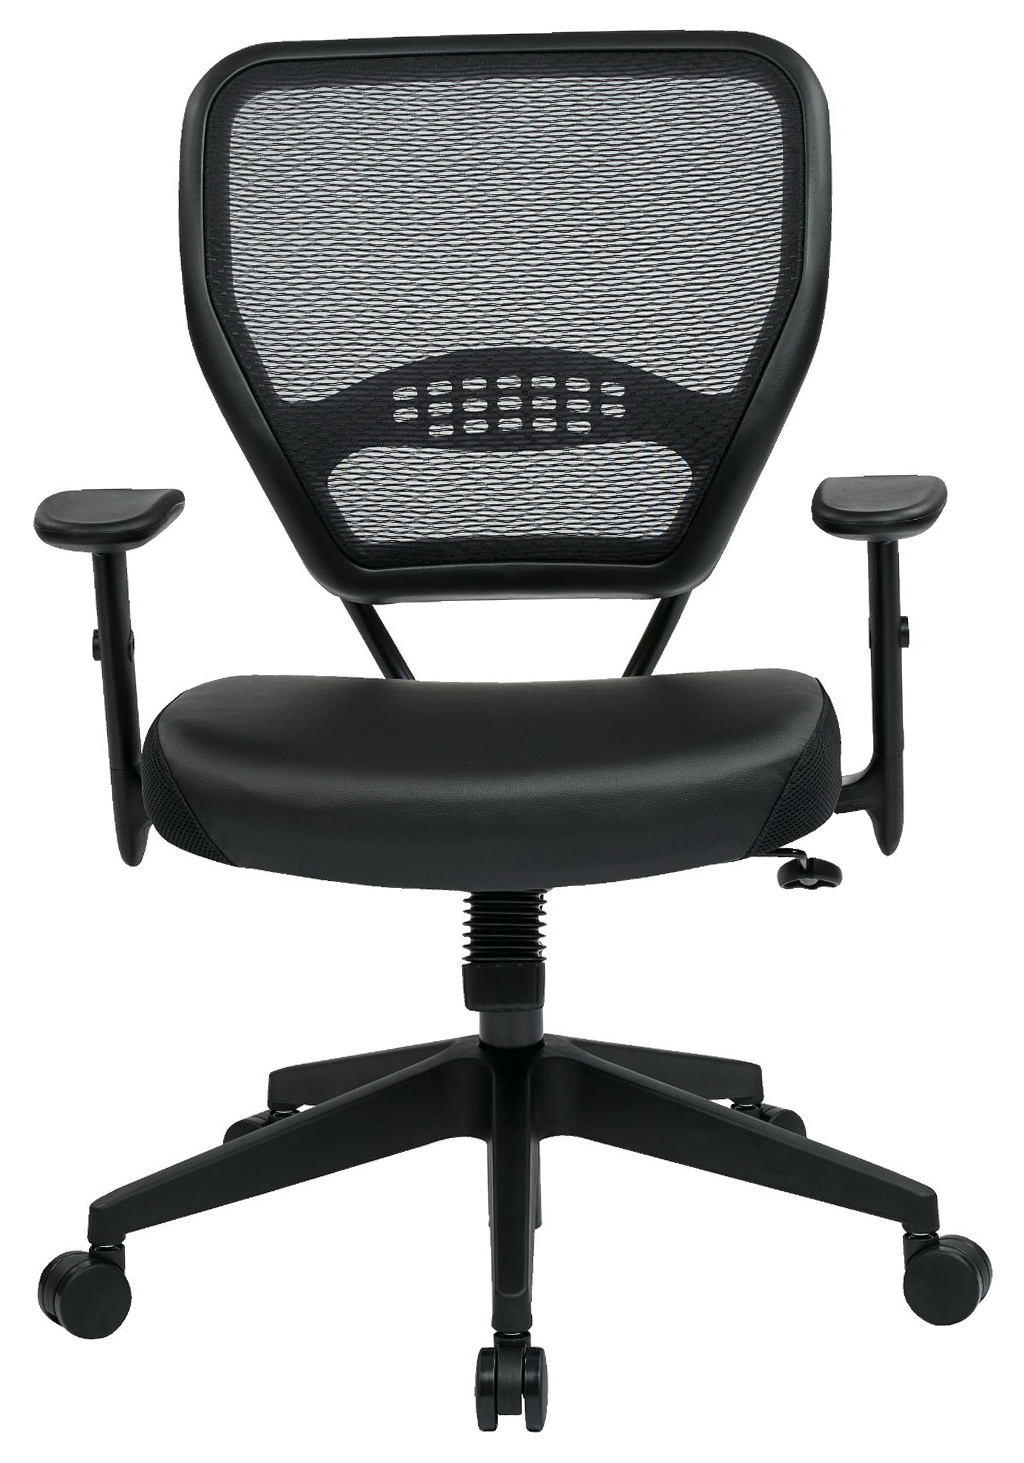 Best Computer Chair Under 200